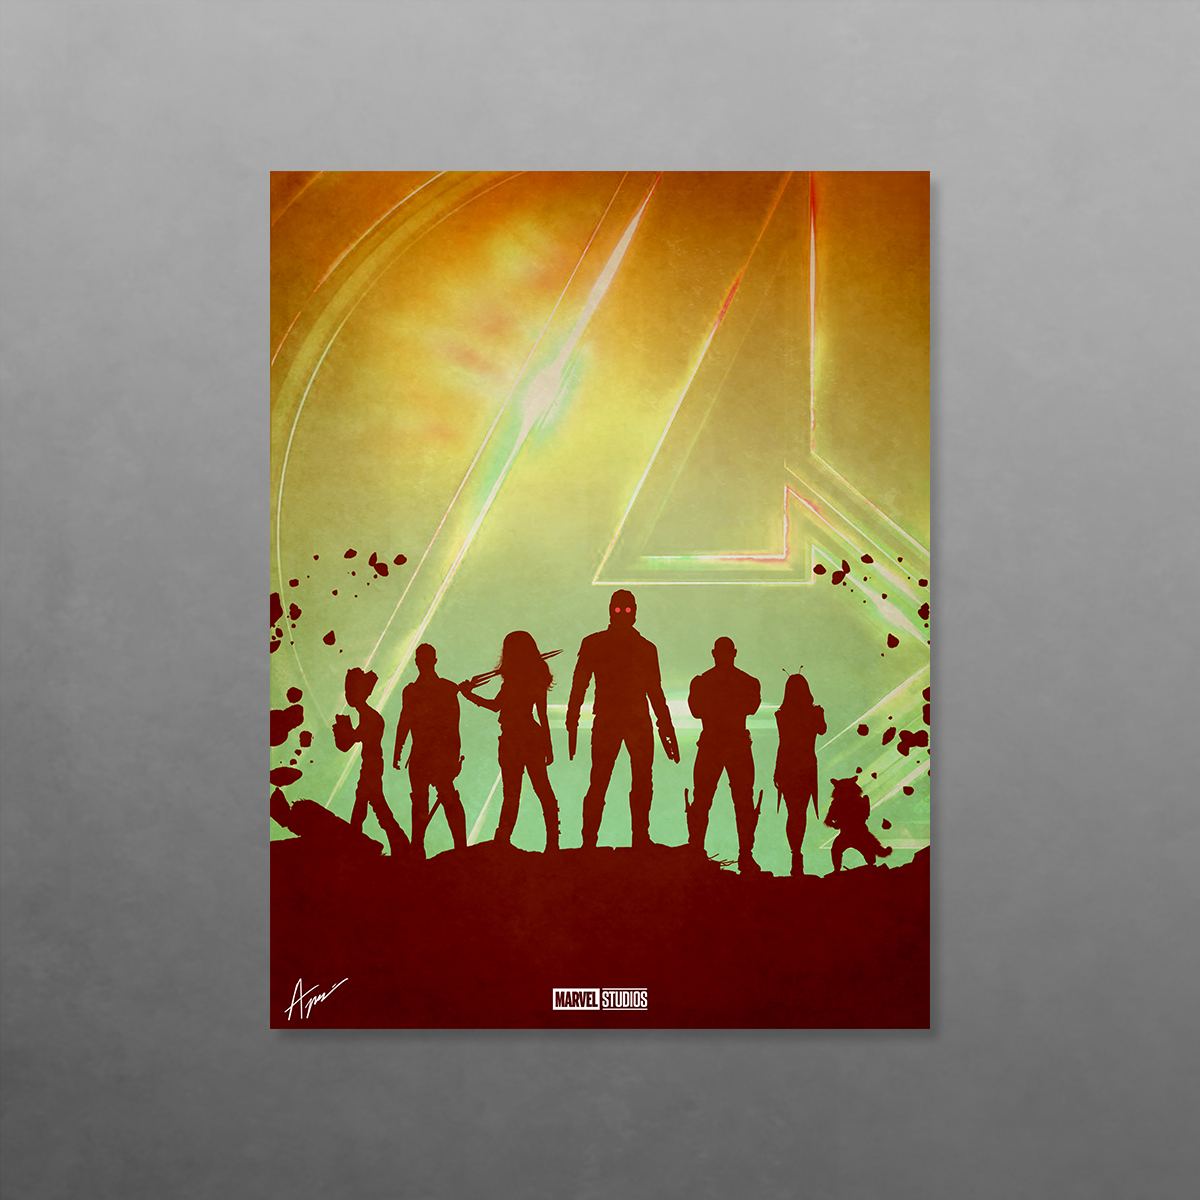 Avengers: Infinity War Illustrated Posters on Behance